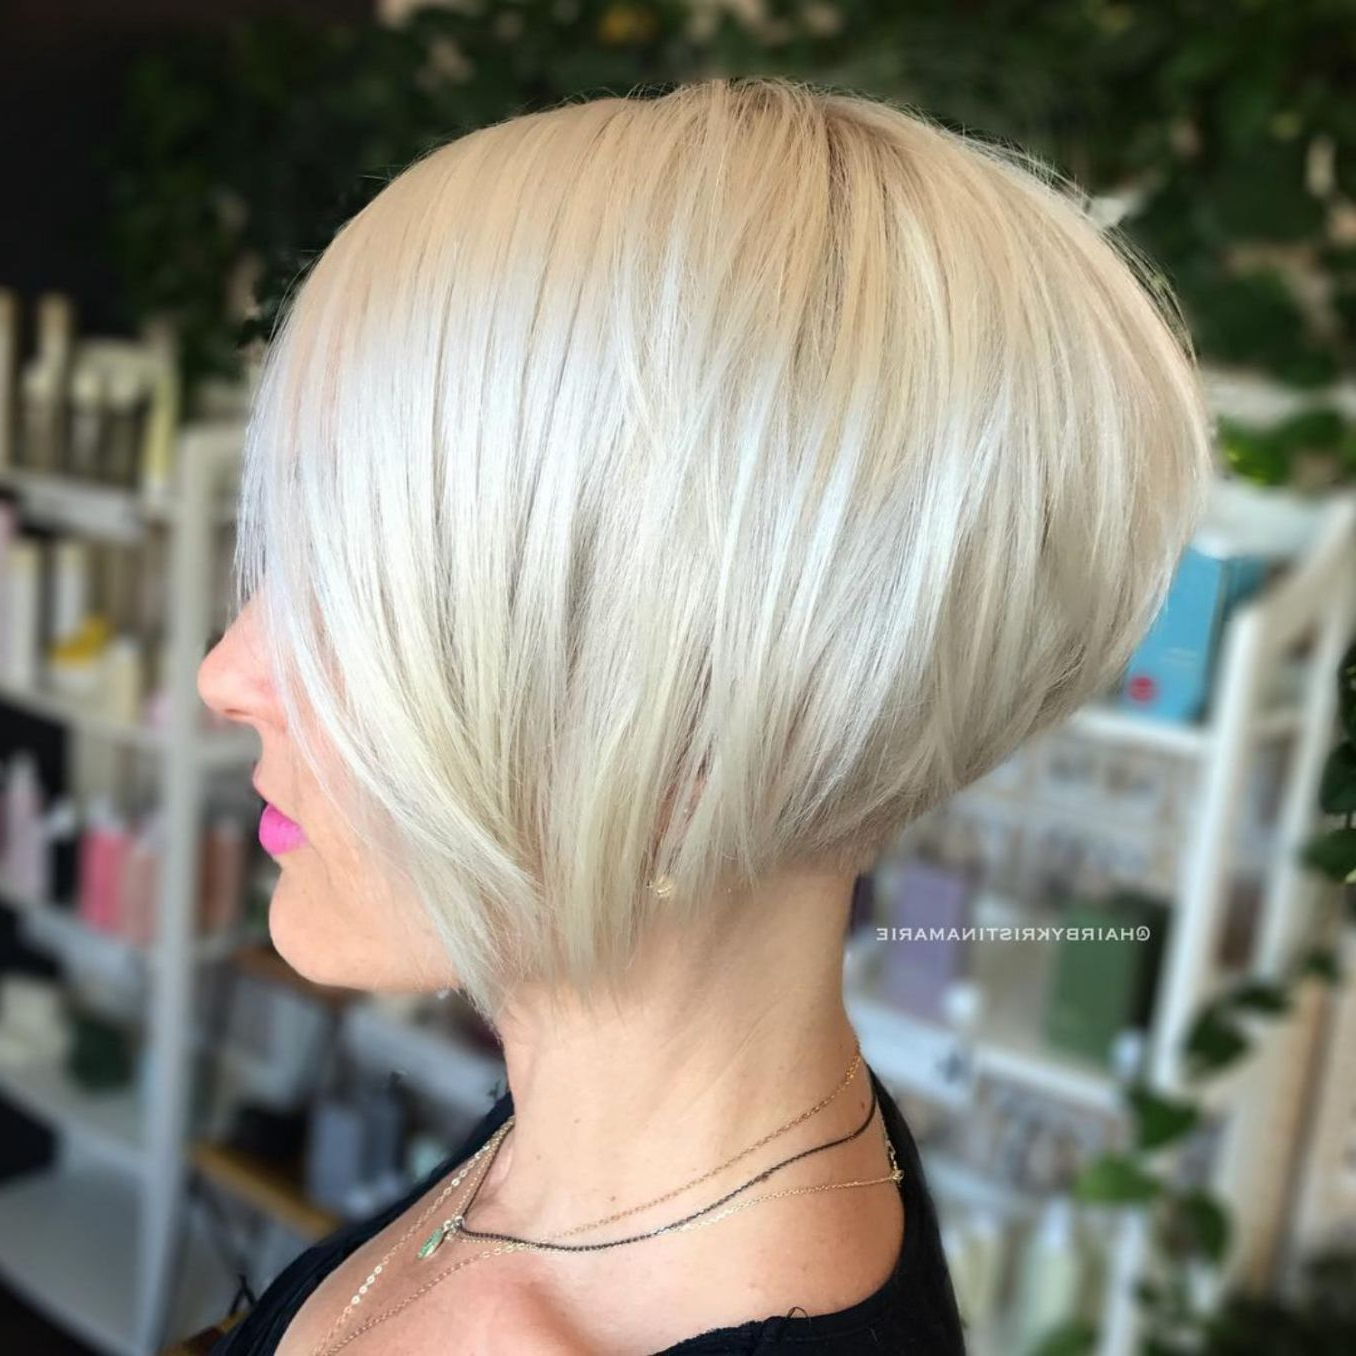 100 Mind Blowing Short Hairstyles For Fine Hair | Hair | Pinterest Pertaining To White Blonde Bob Haircuts For Fine Hair (View 10 of 20)